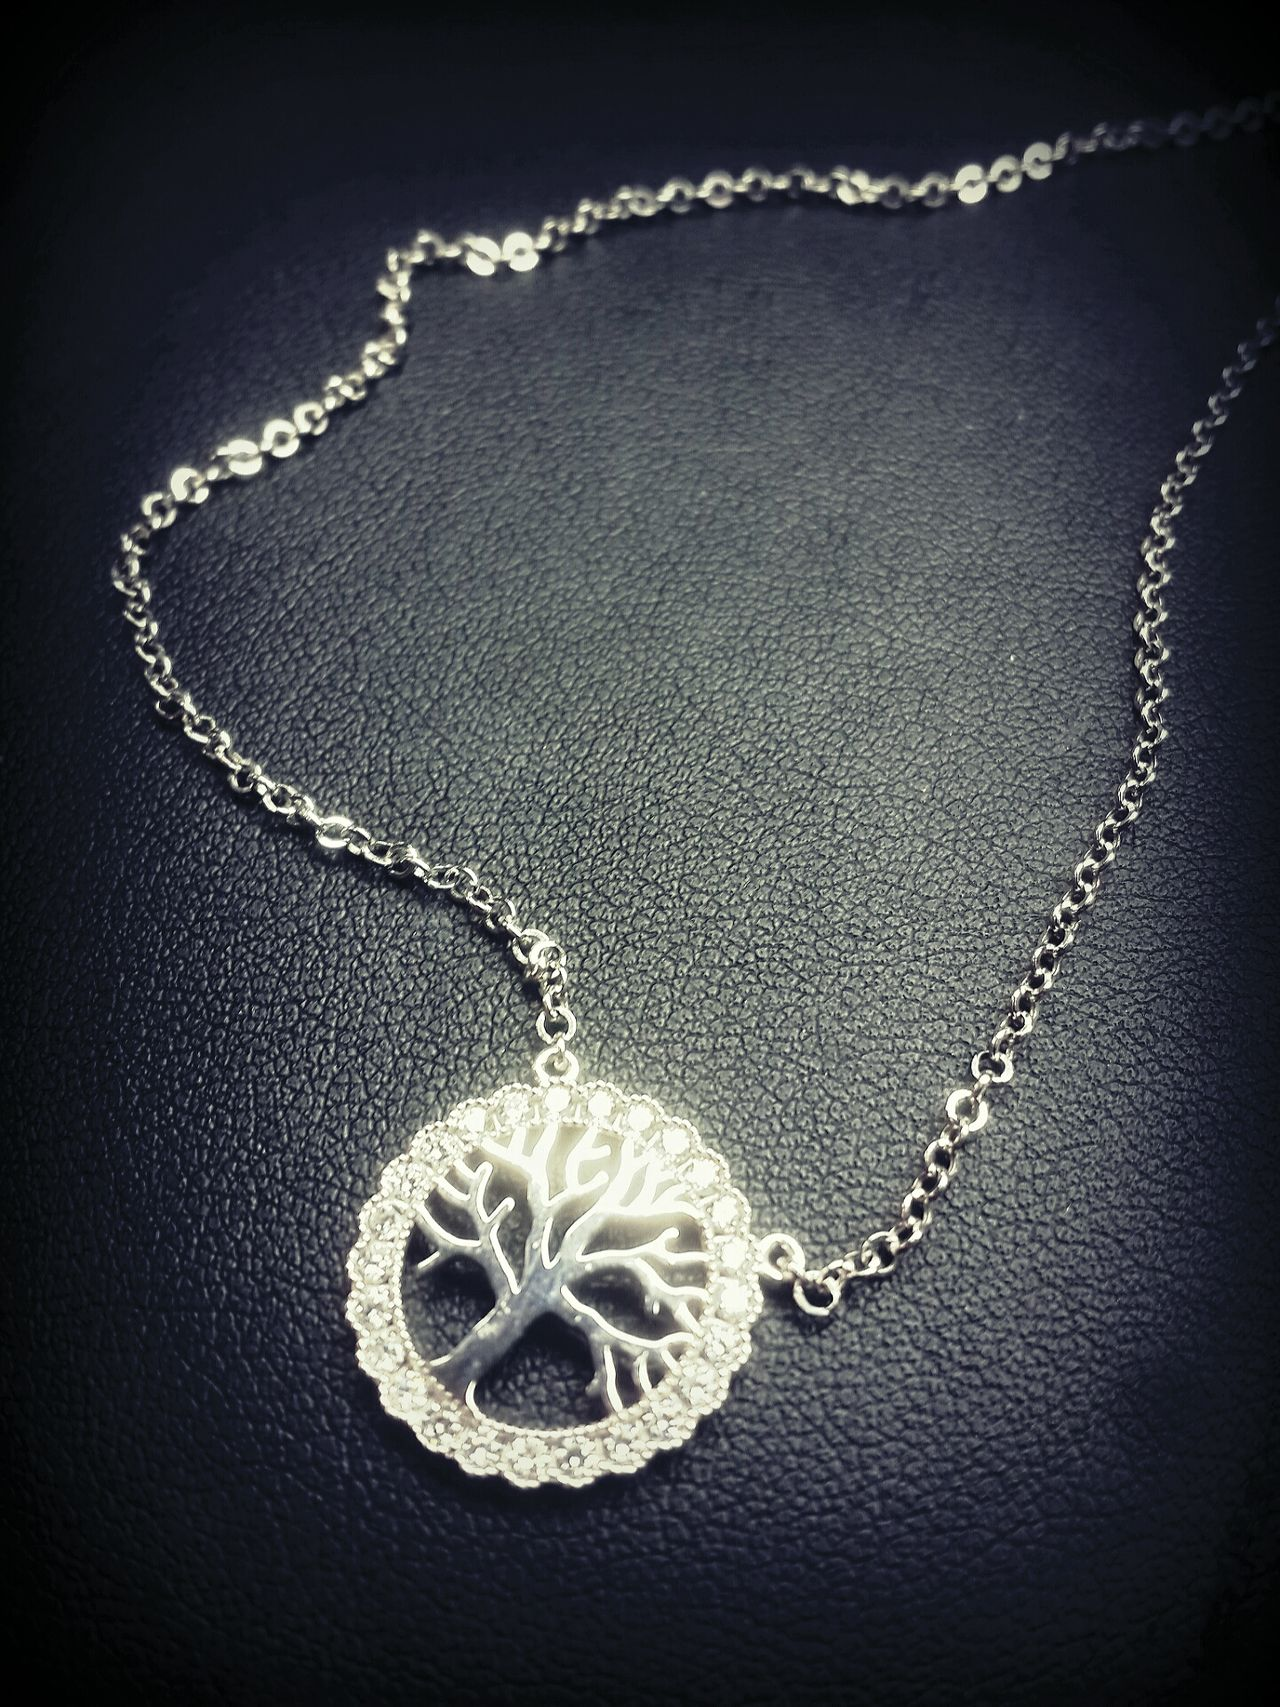 Necklace Jewellery Tree Symbol White Gold Adoration Adorn